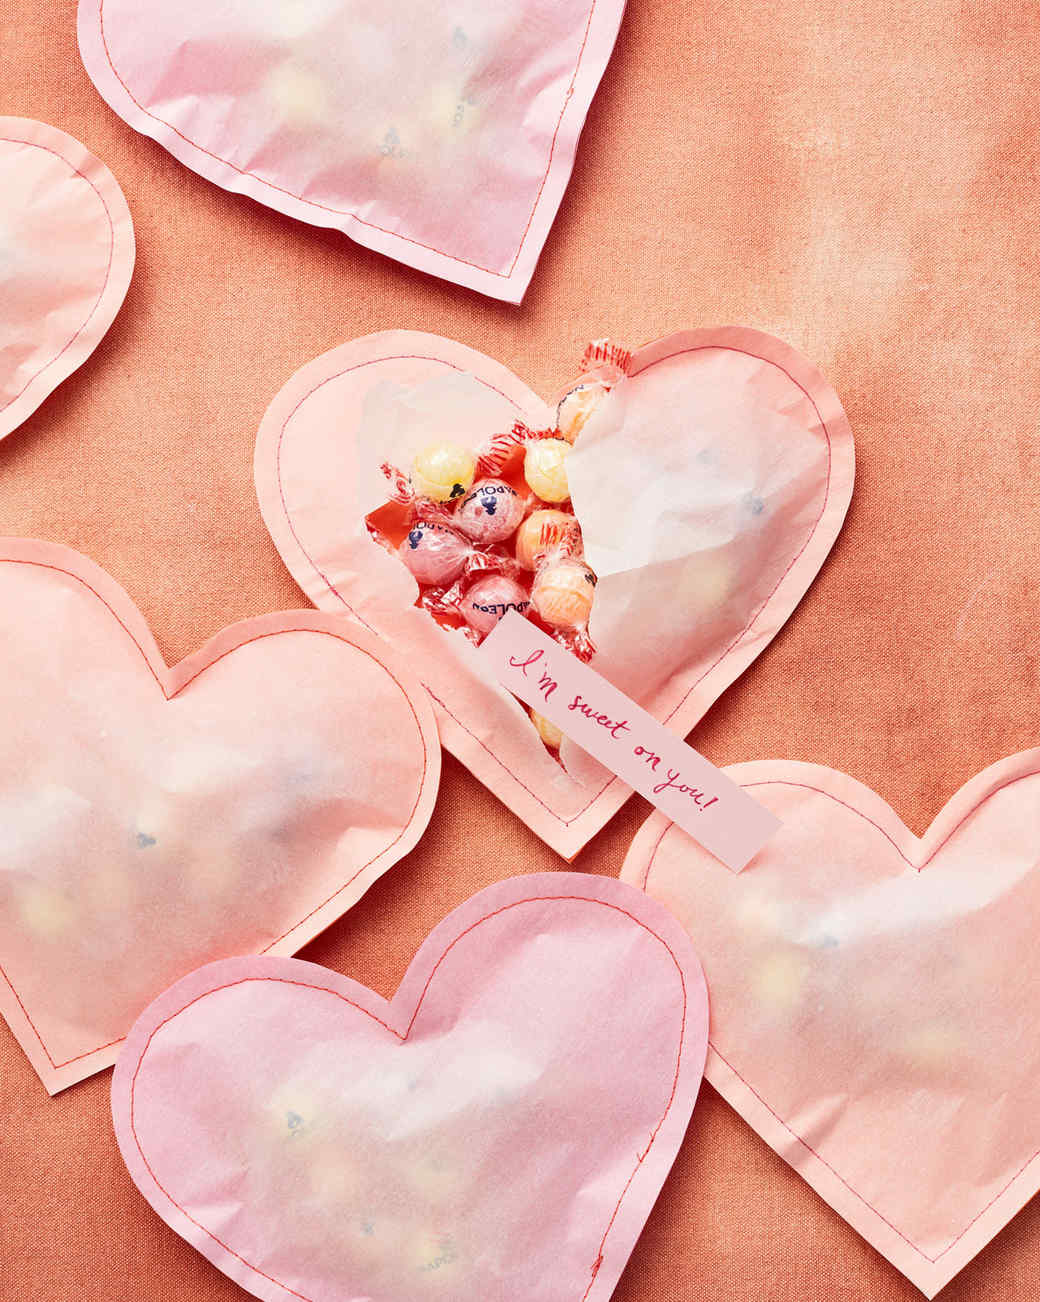 parchment paper heart craft